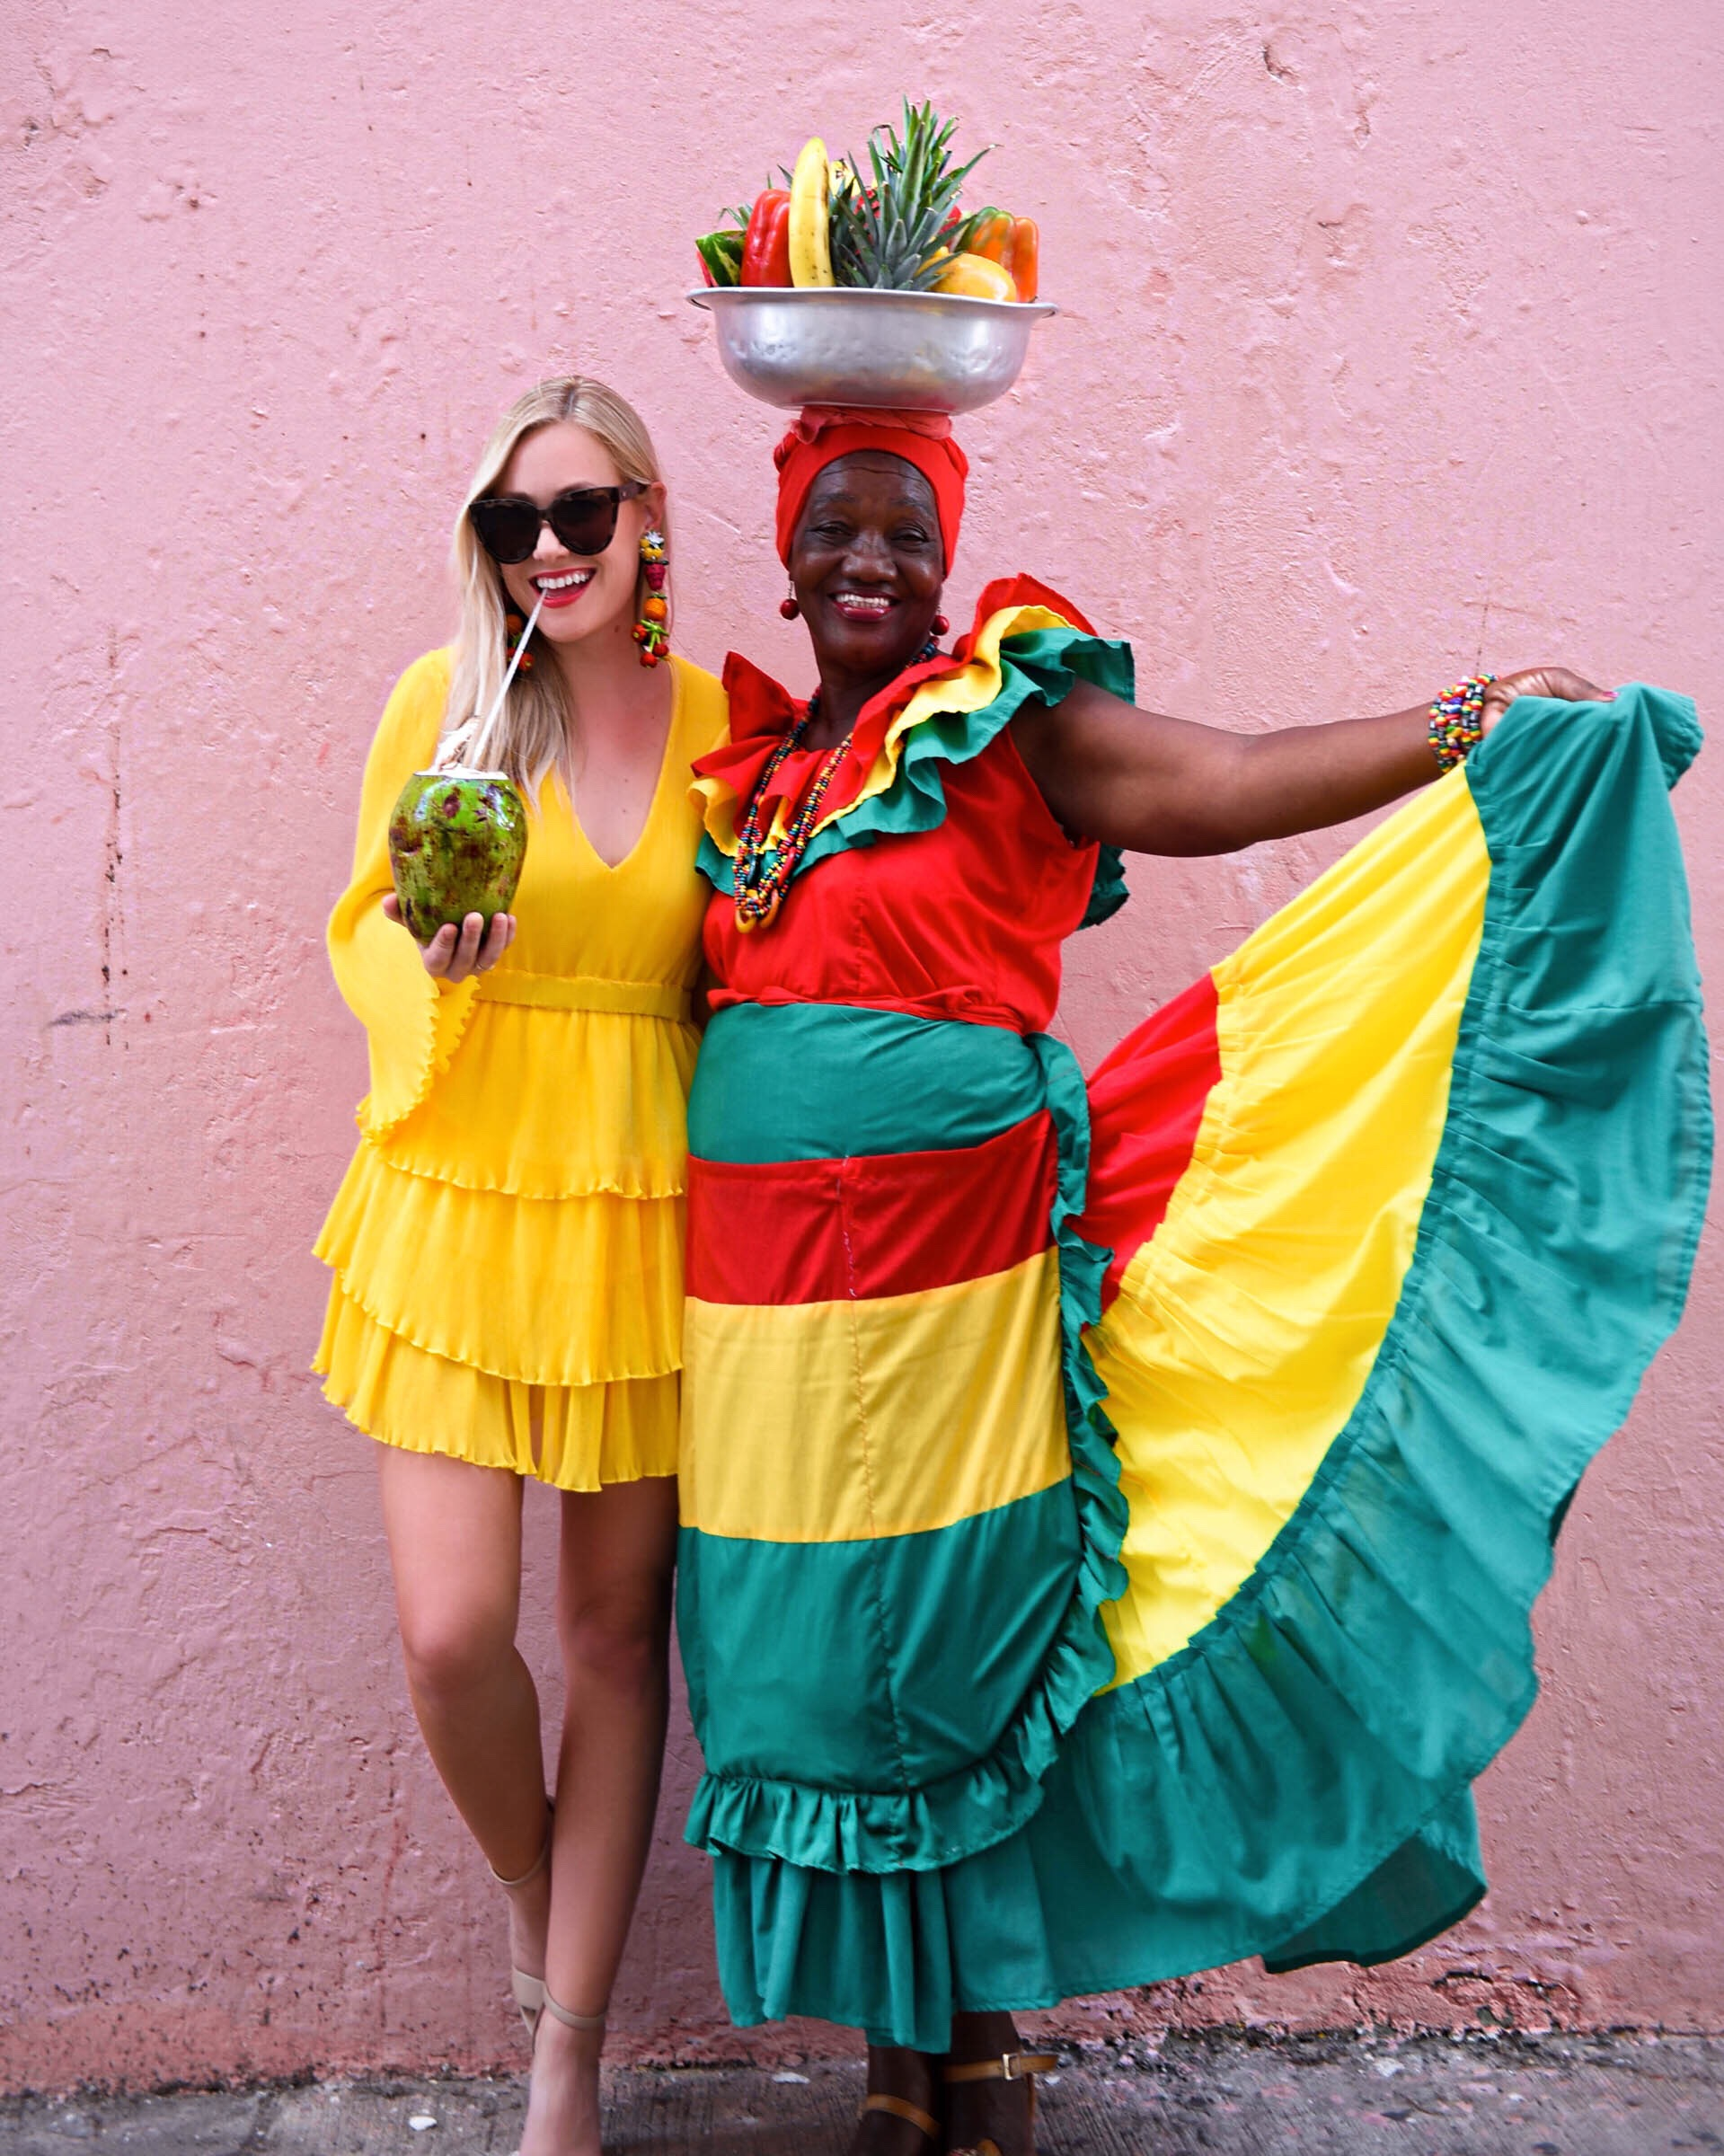 Lo-Murphy-Colombia-Yellow-Dress-Travel-Blogger